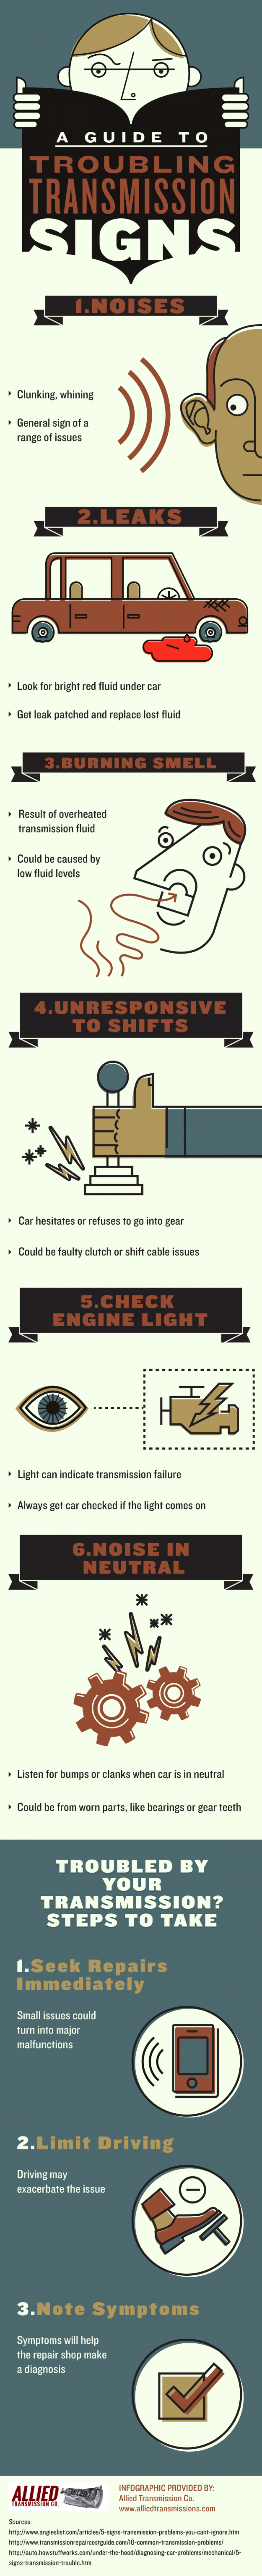 A GUIDE TO TROUBLING TRANSMISSION SIGNS Infographic